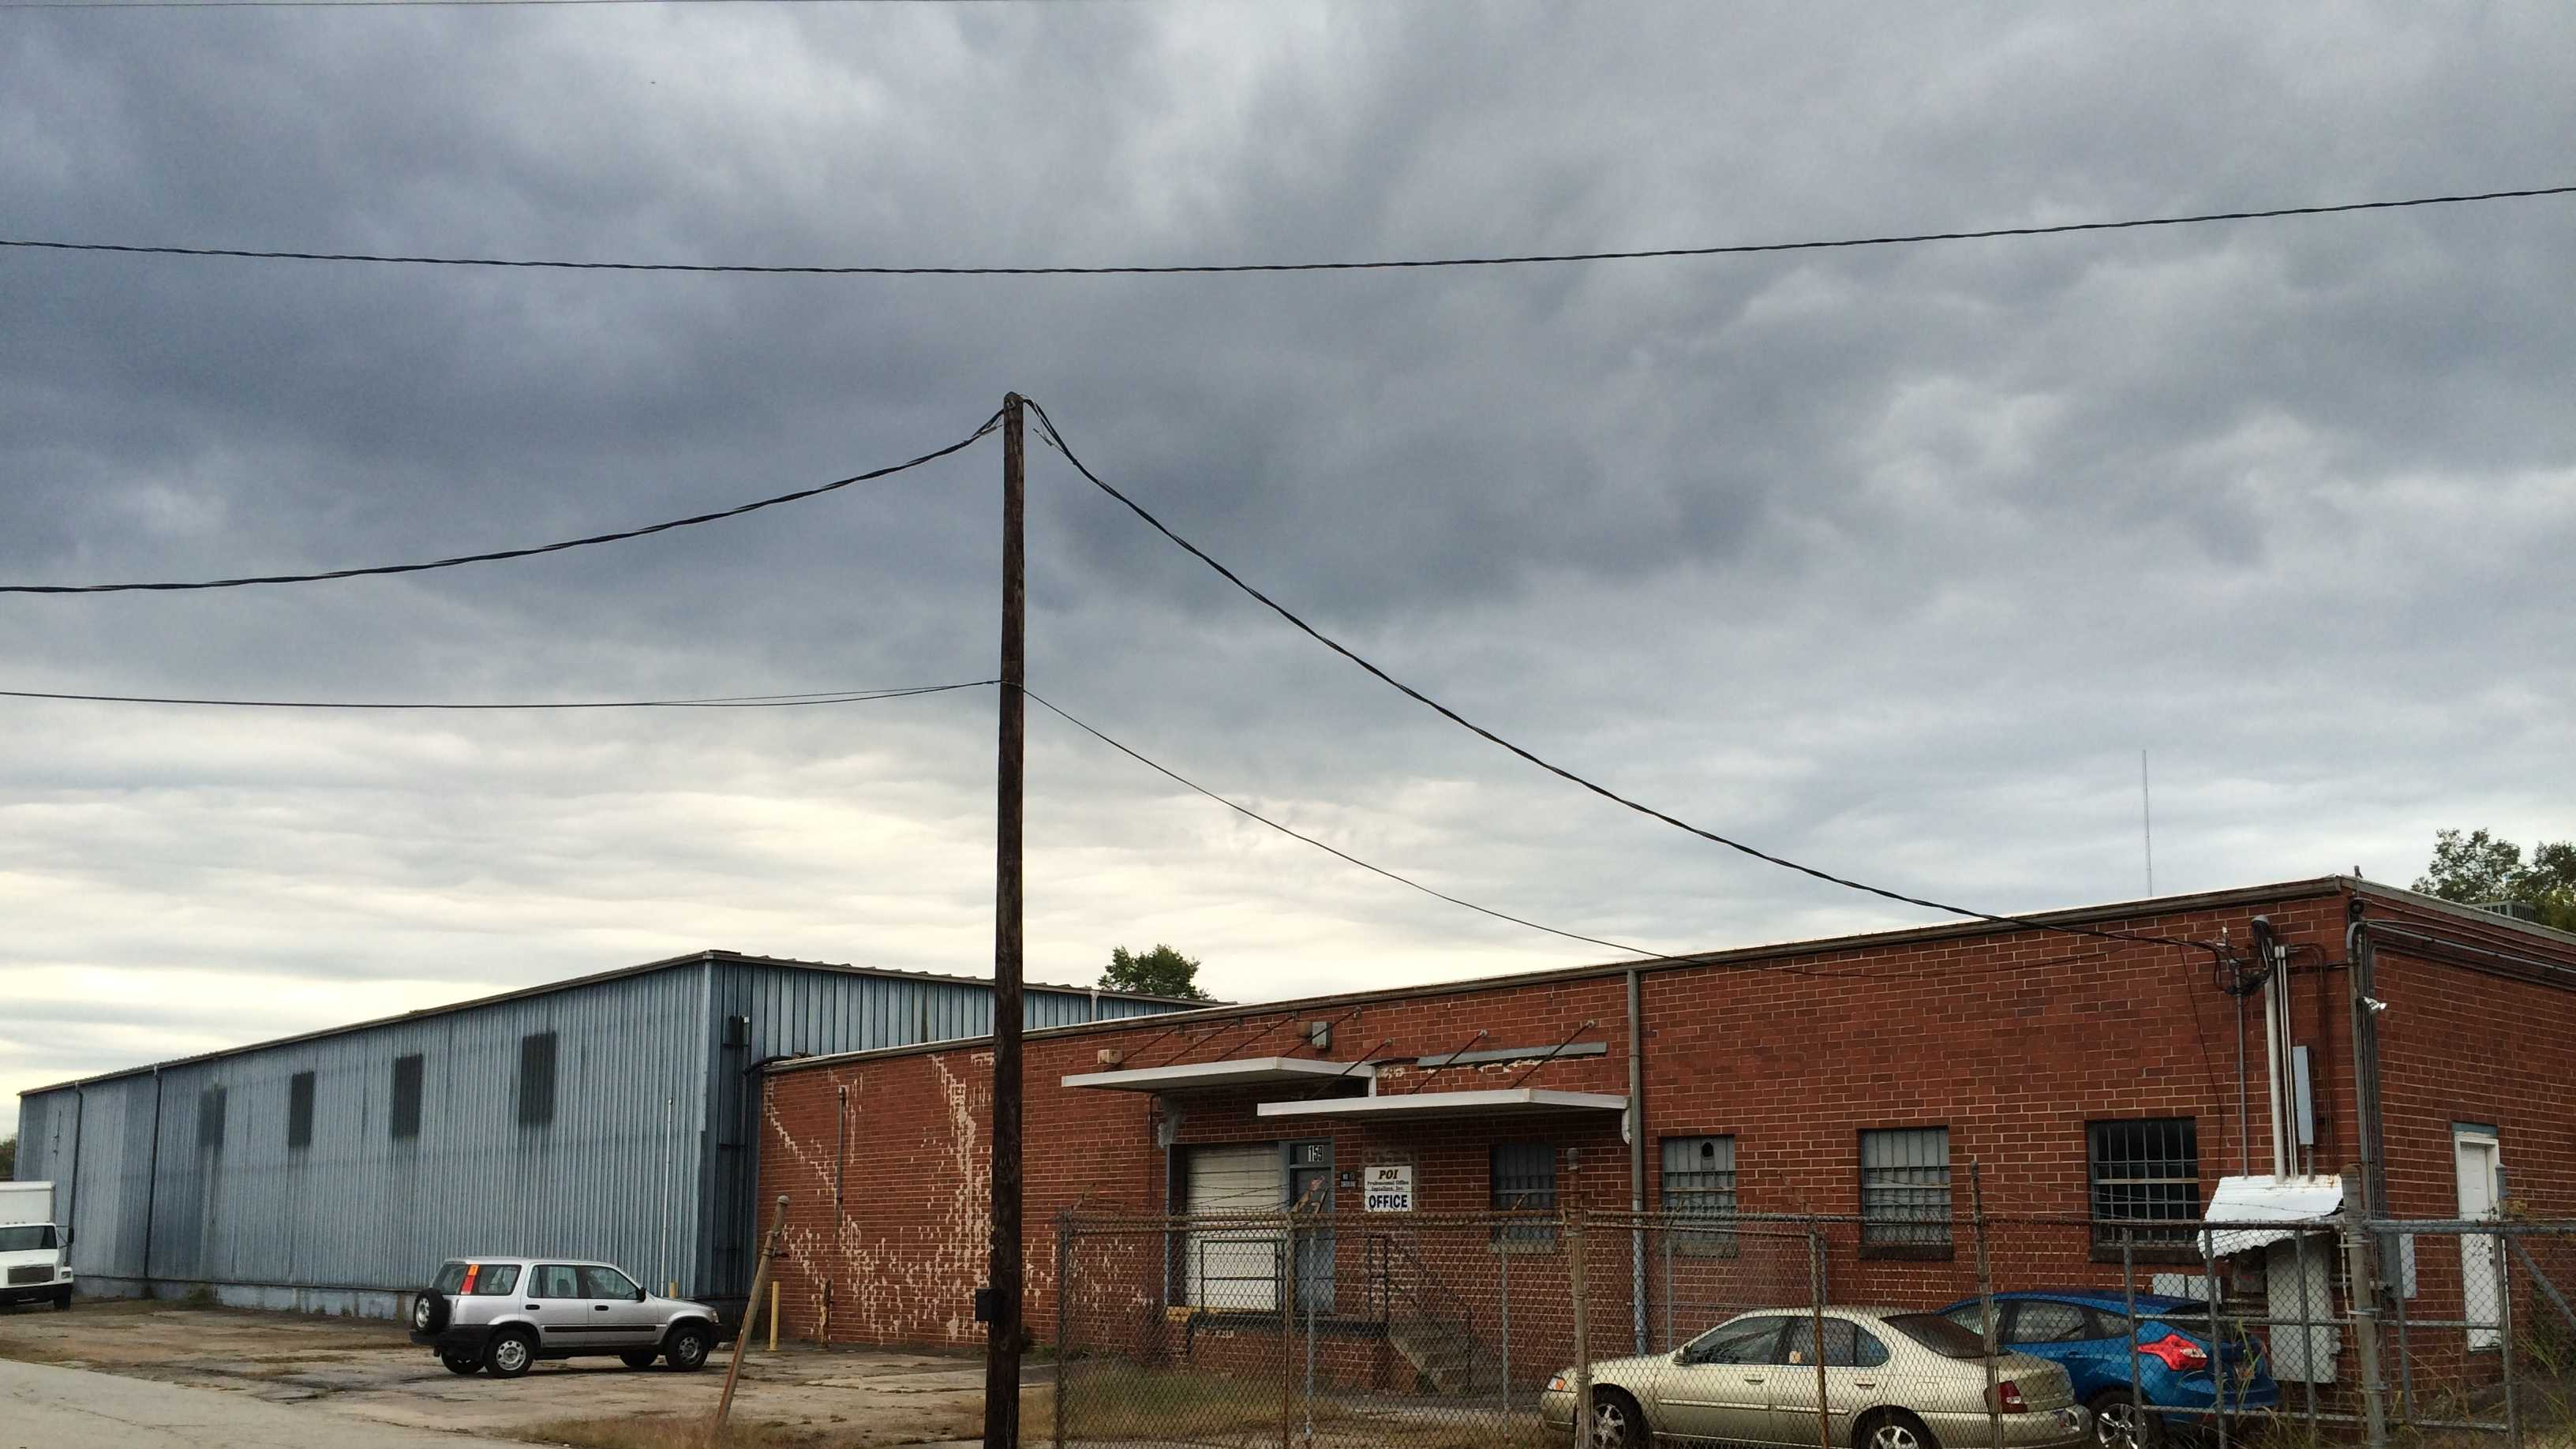 The city bought the blue warehouse and red brick building for demolition.